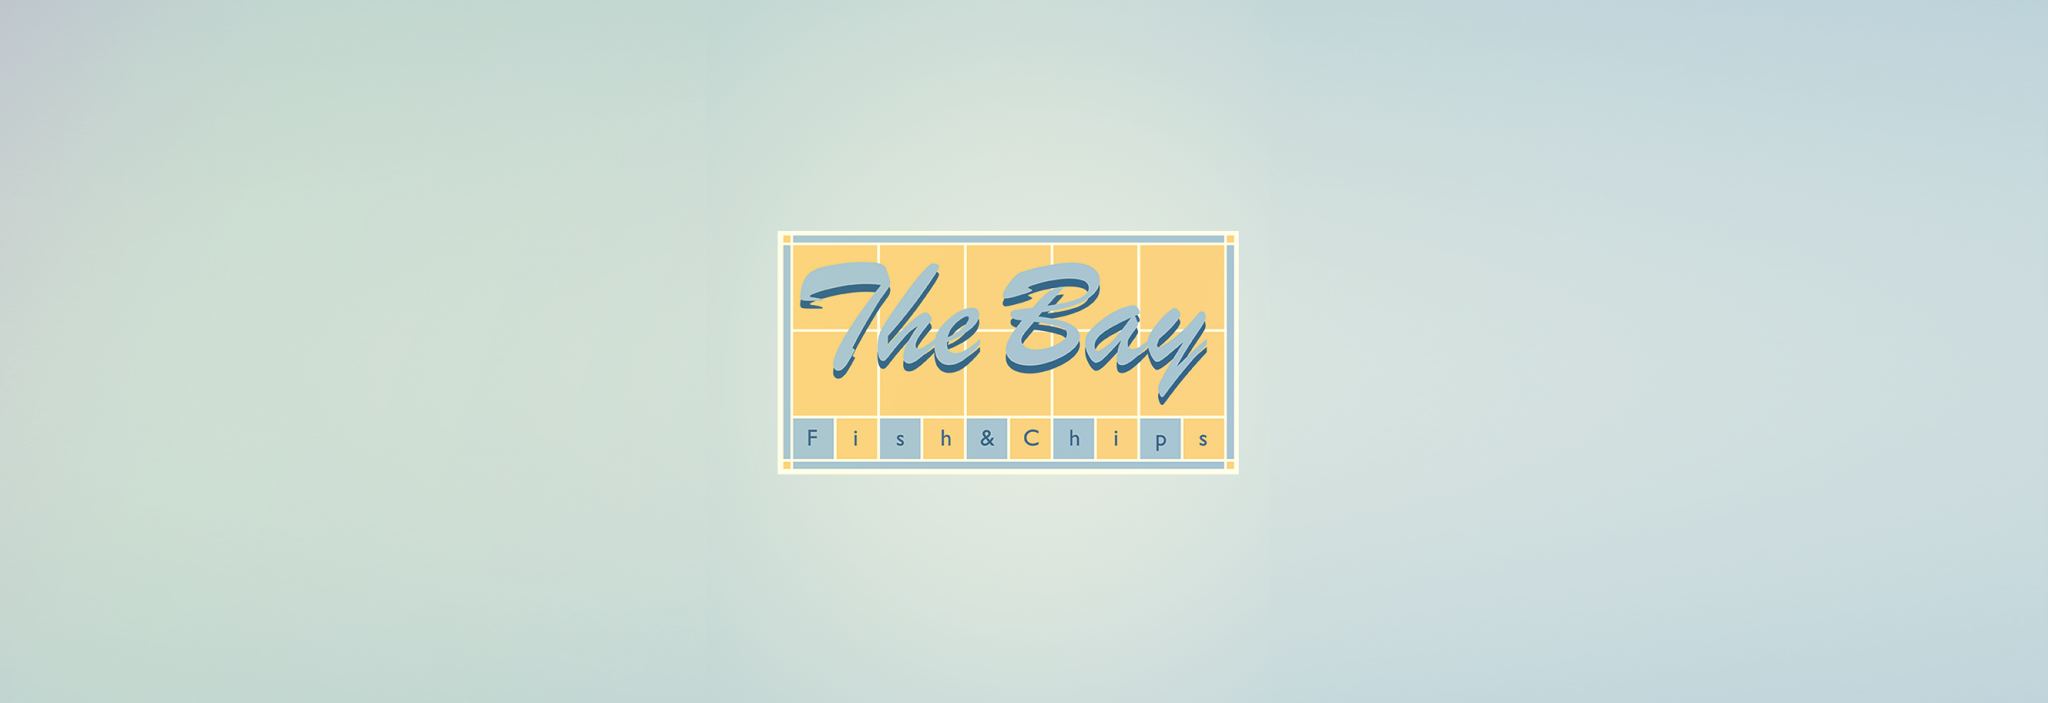 The Bay Fish – iOS app launch